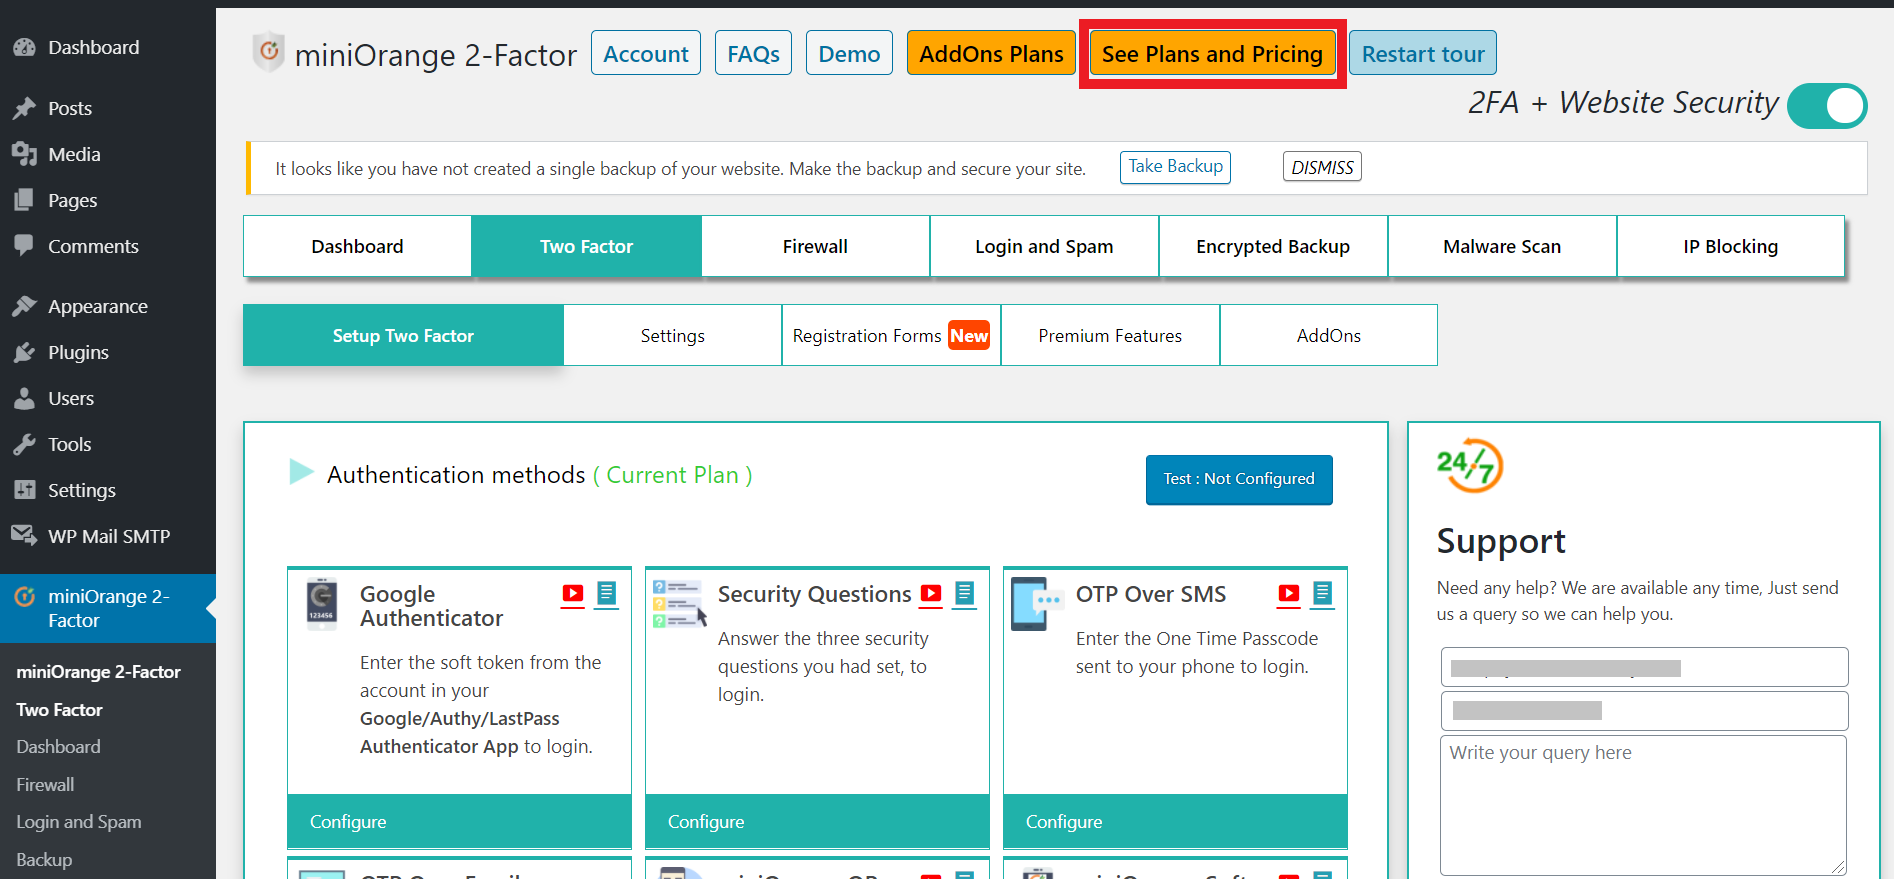 click over see plans and pricing button